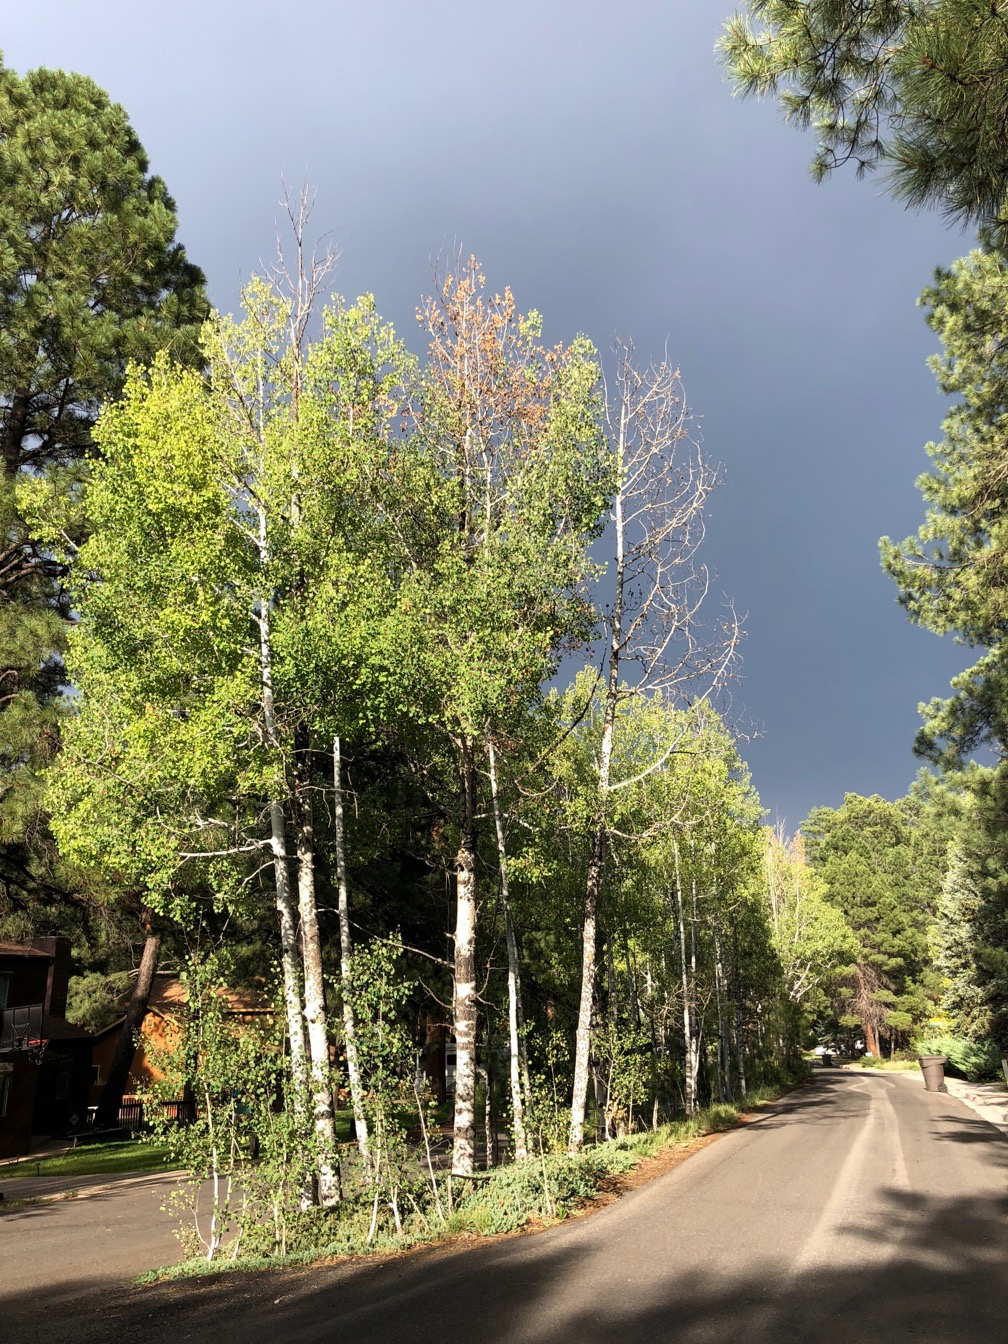 Photo of Aspen trees in the foreground and dark rain clouds in the background.